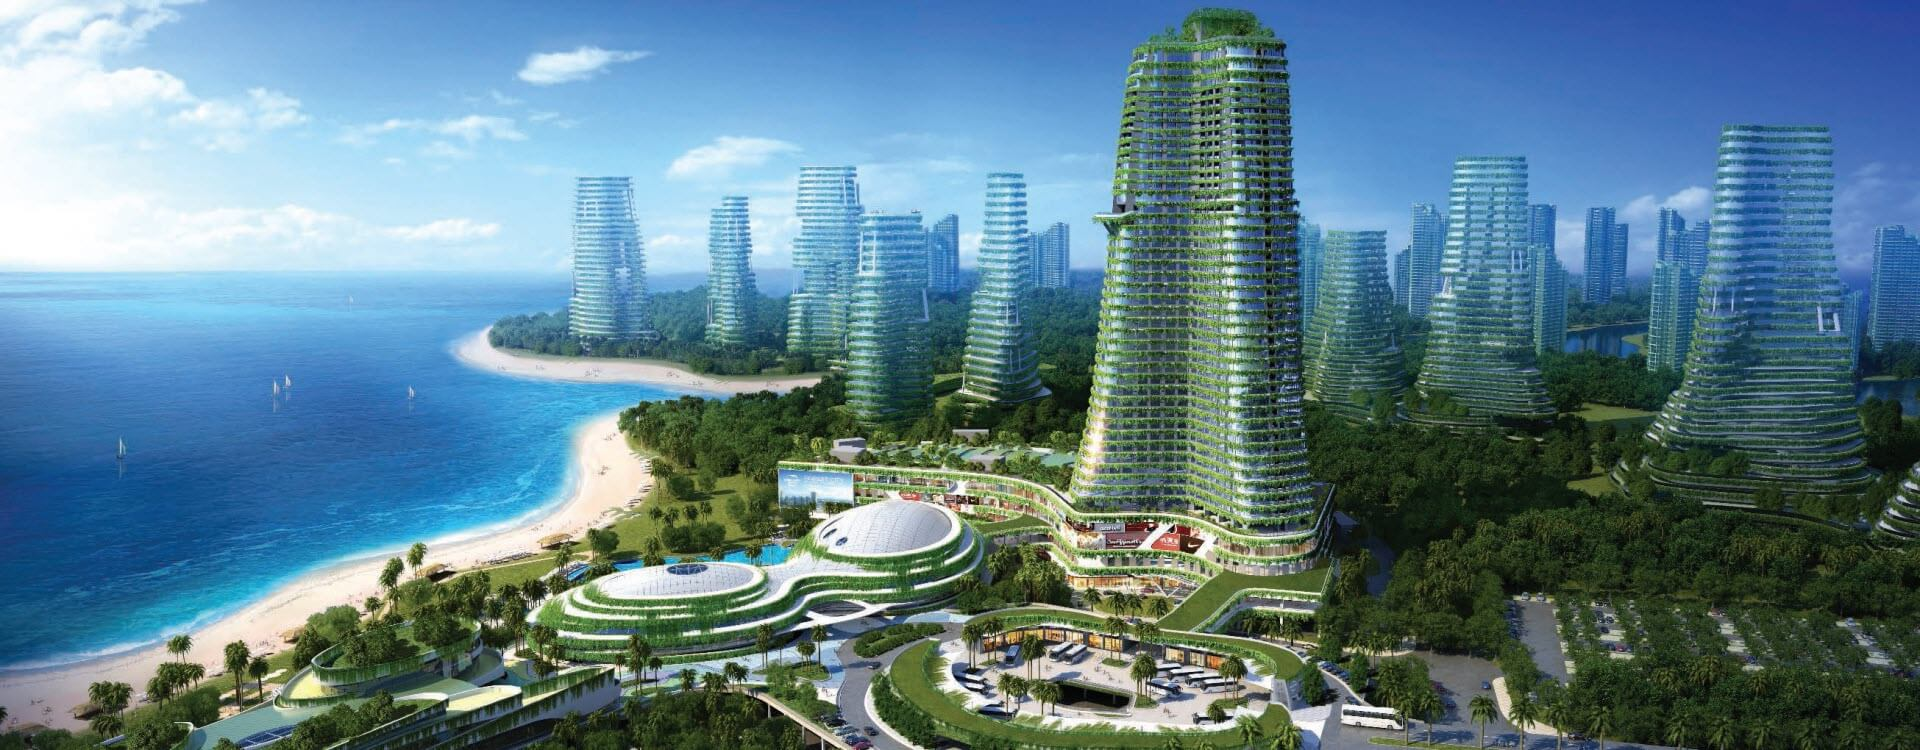 phoi-canh-forest-city-landmark-building